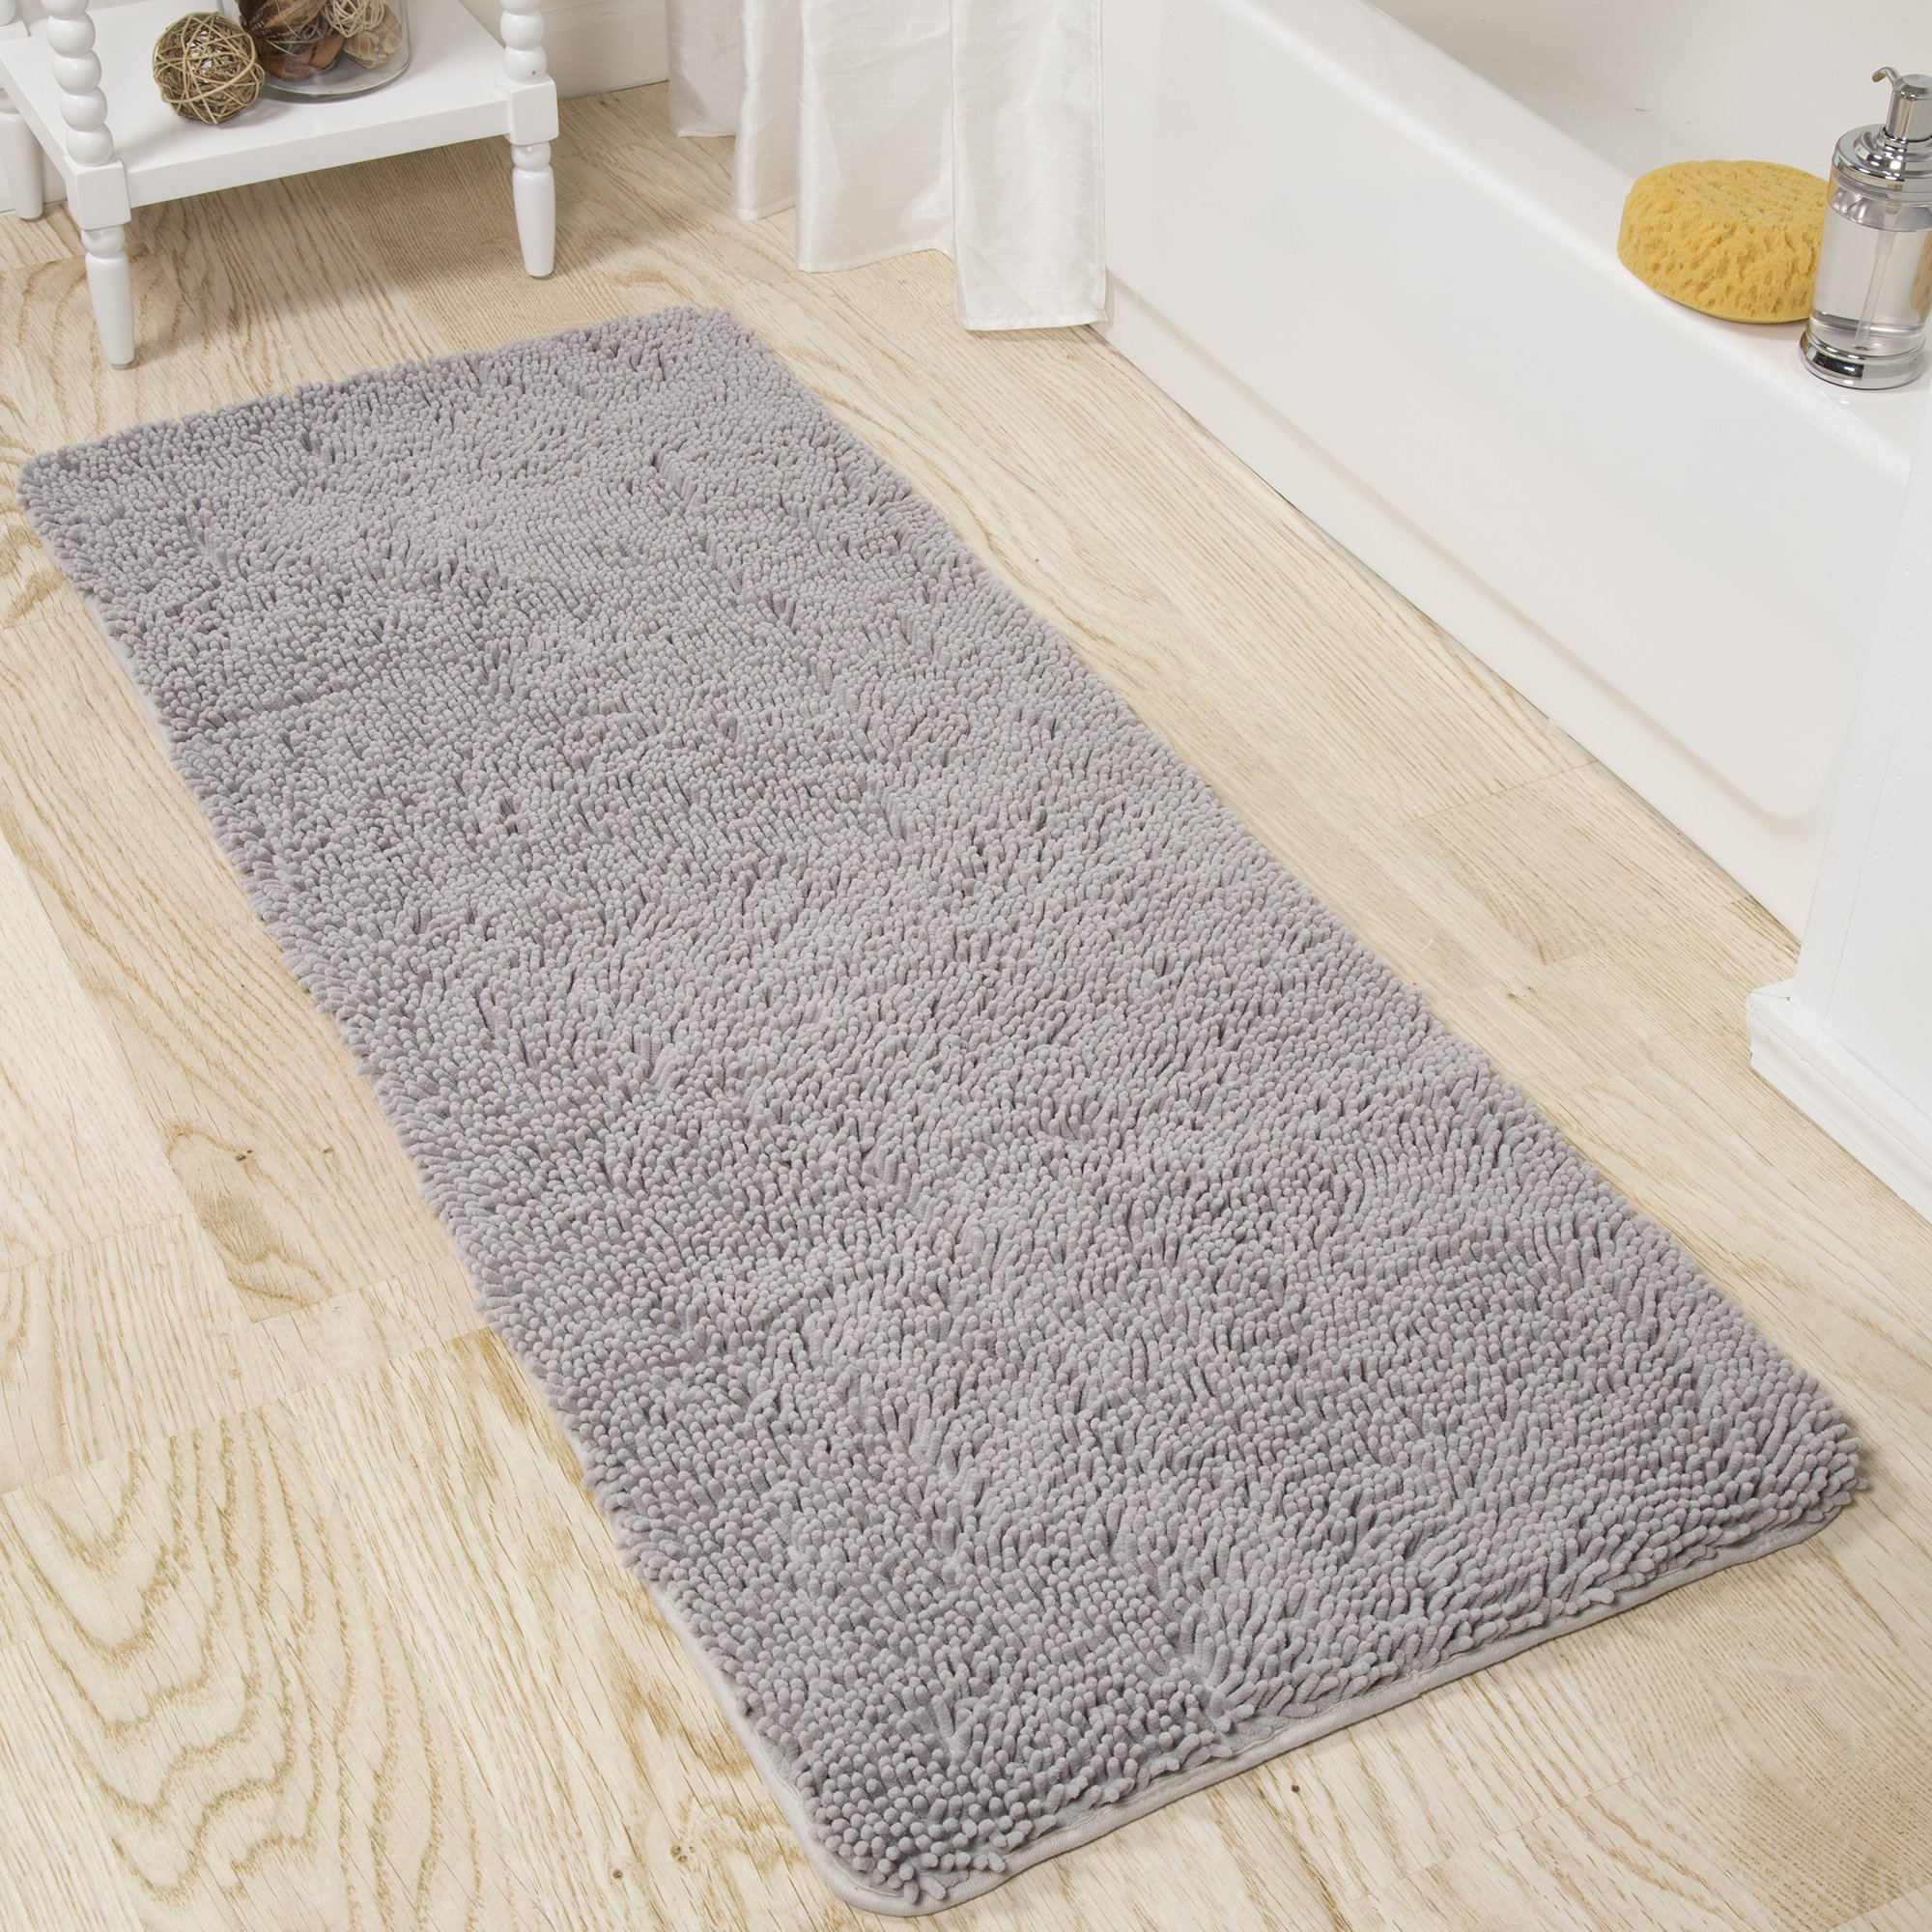 Lavish Home Memory Foam Shag Bath Mat 2-Feet by 5-Feet- Grey